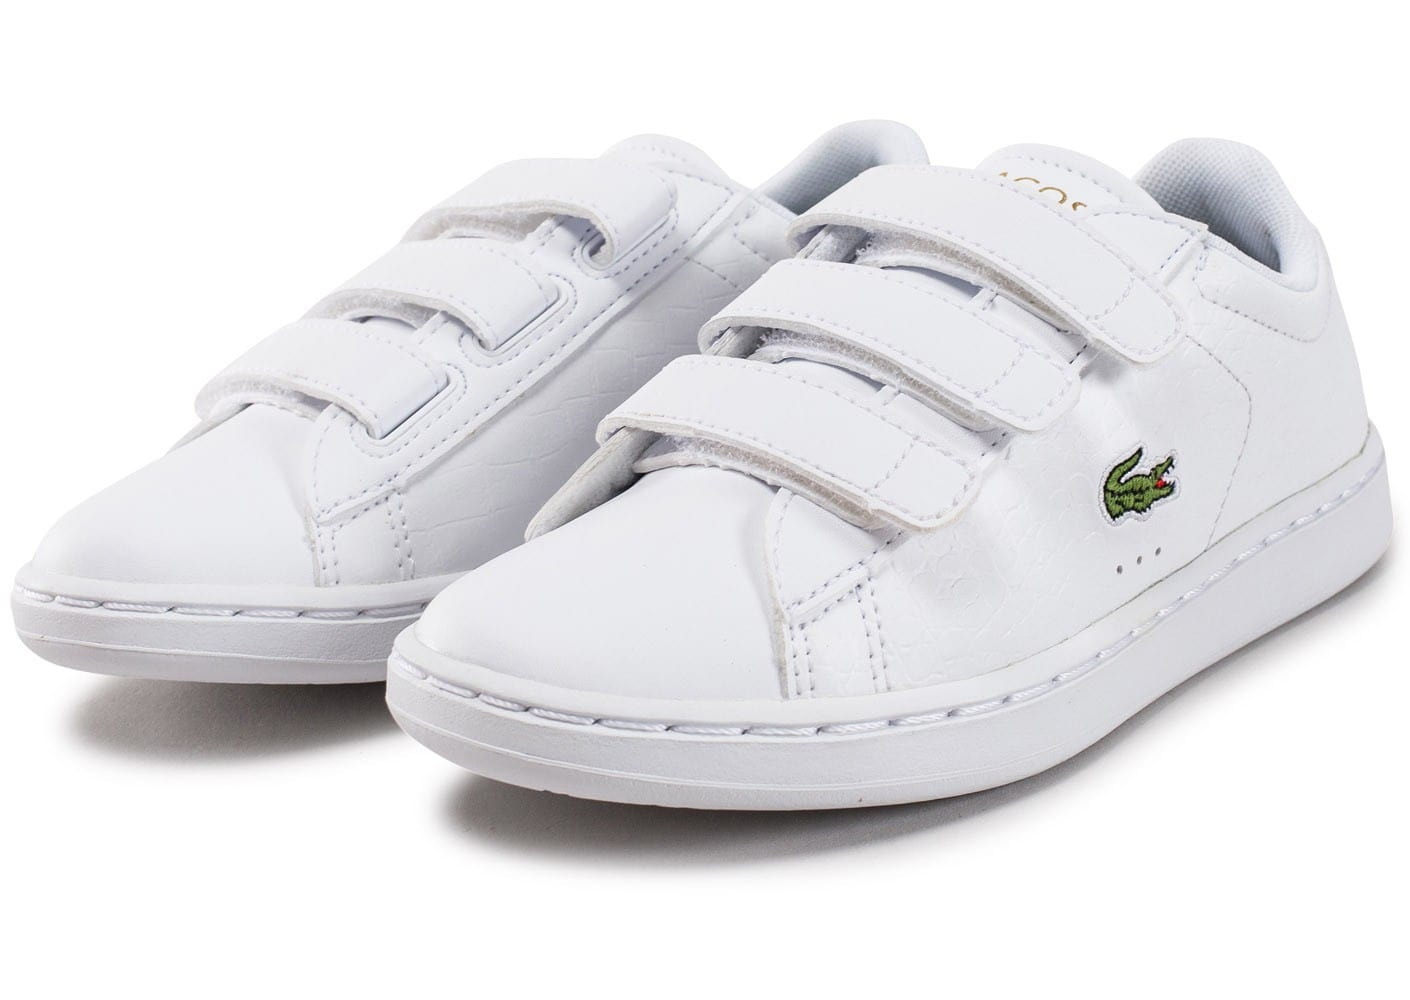 Chaussures Pack Chausport Lacoste Evo Croc Carnaby Enfant PkZuOXi